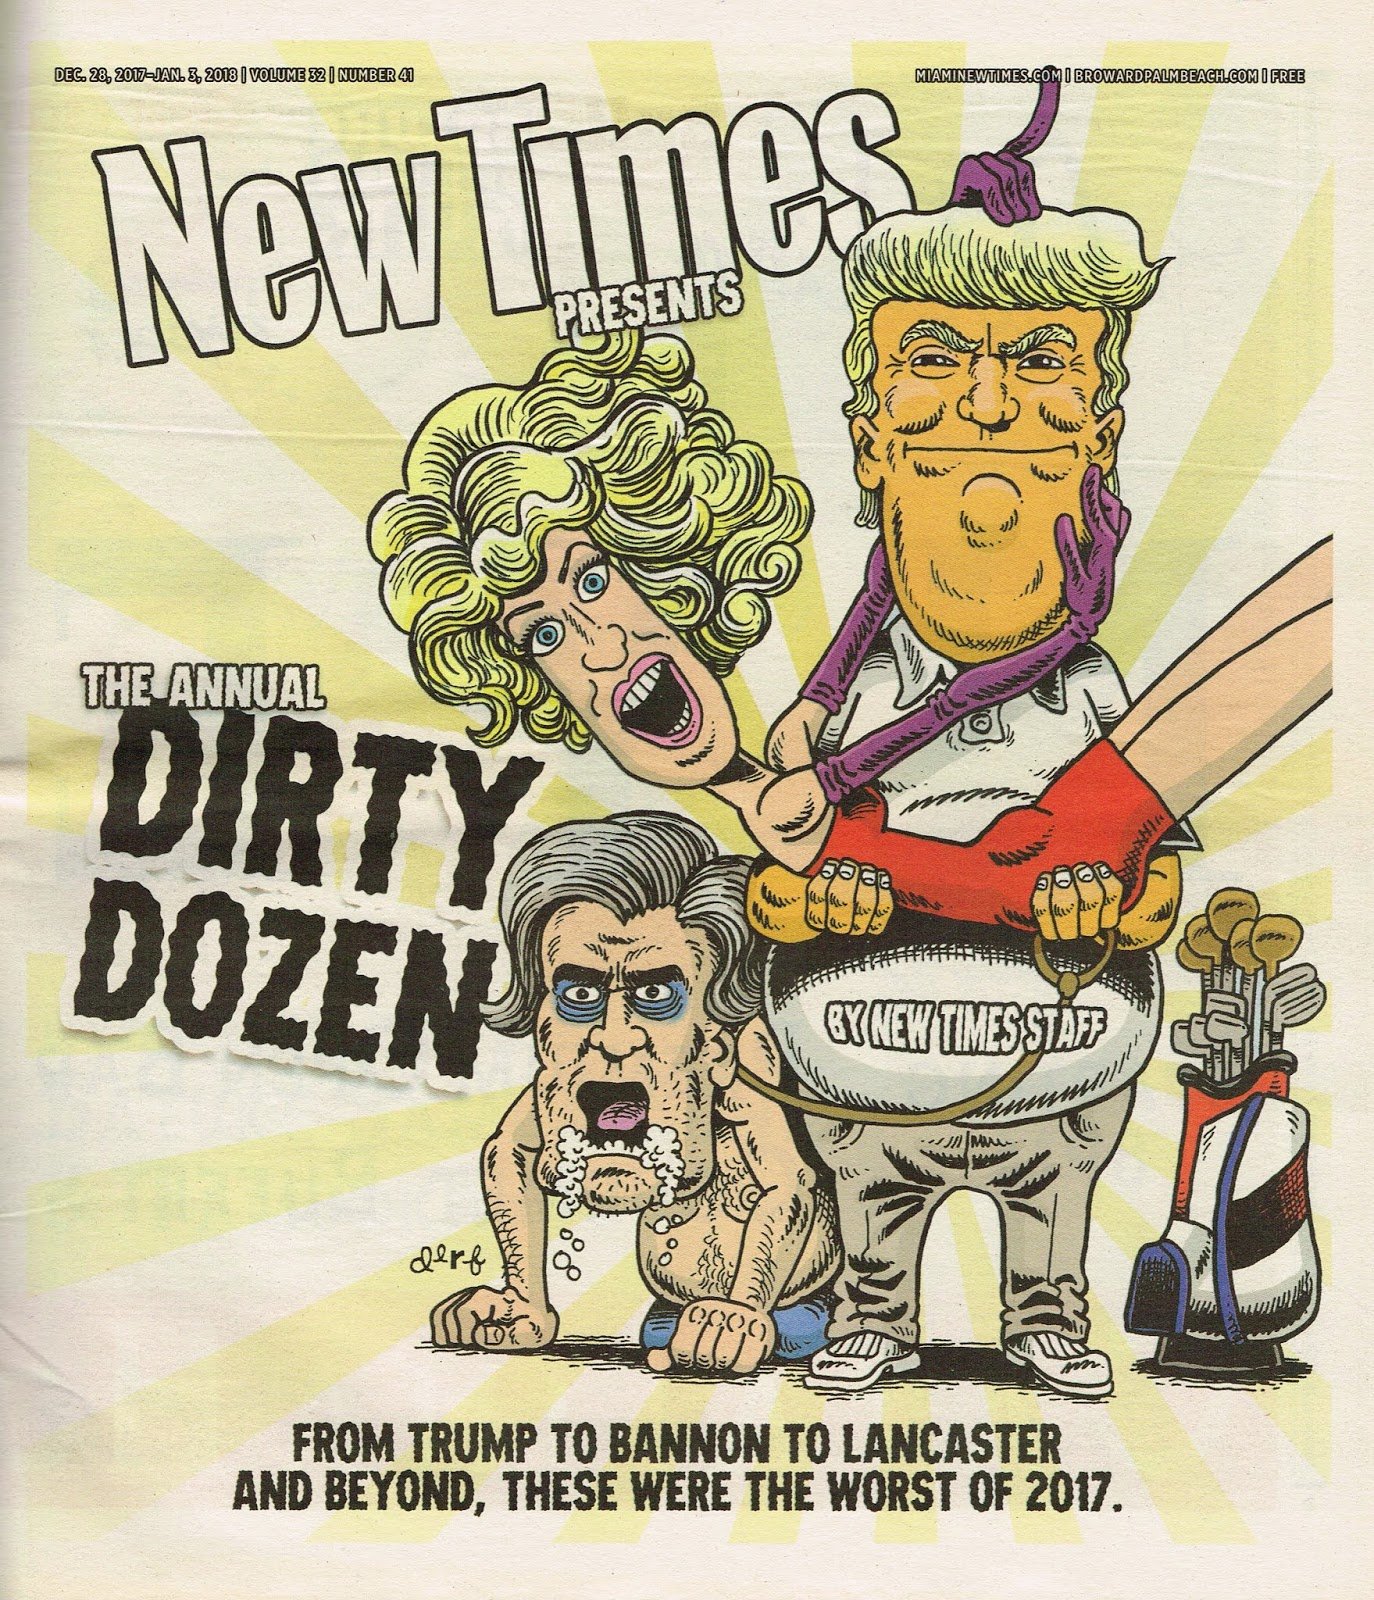 Heres A Cover I Drew For The Miami New Times Once One Of My Many Client Papers Back When I Was Drawing The City Before The Newspaper Apocalypse